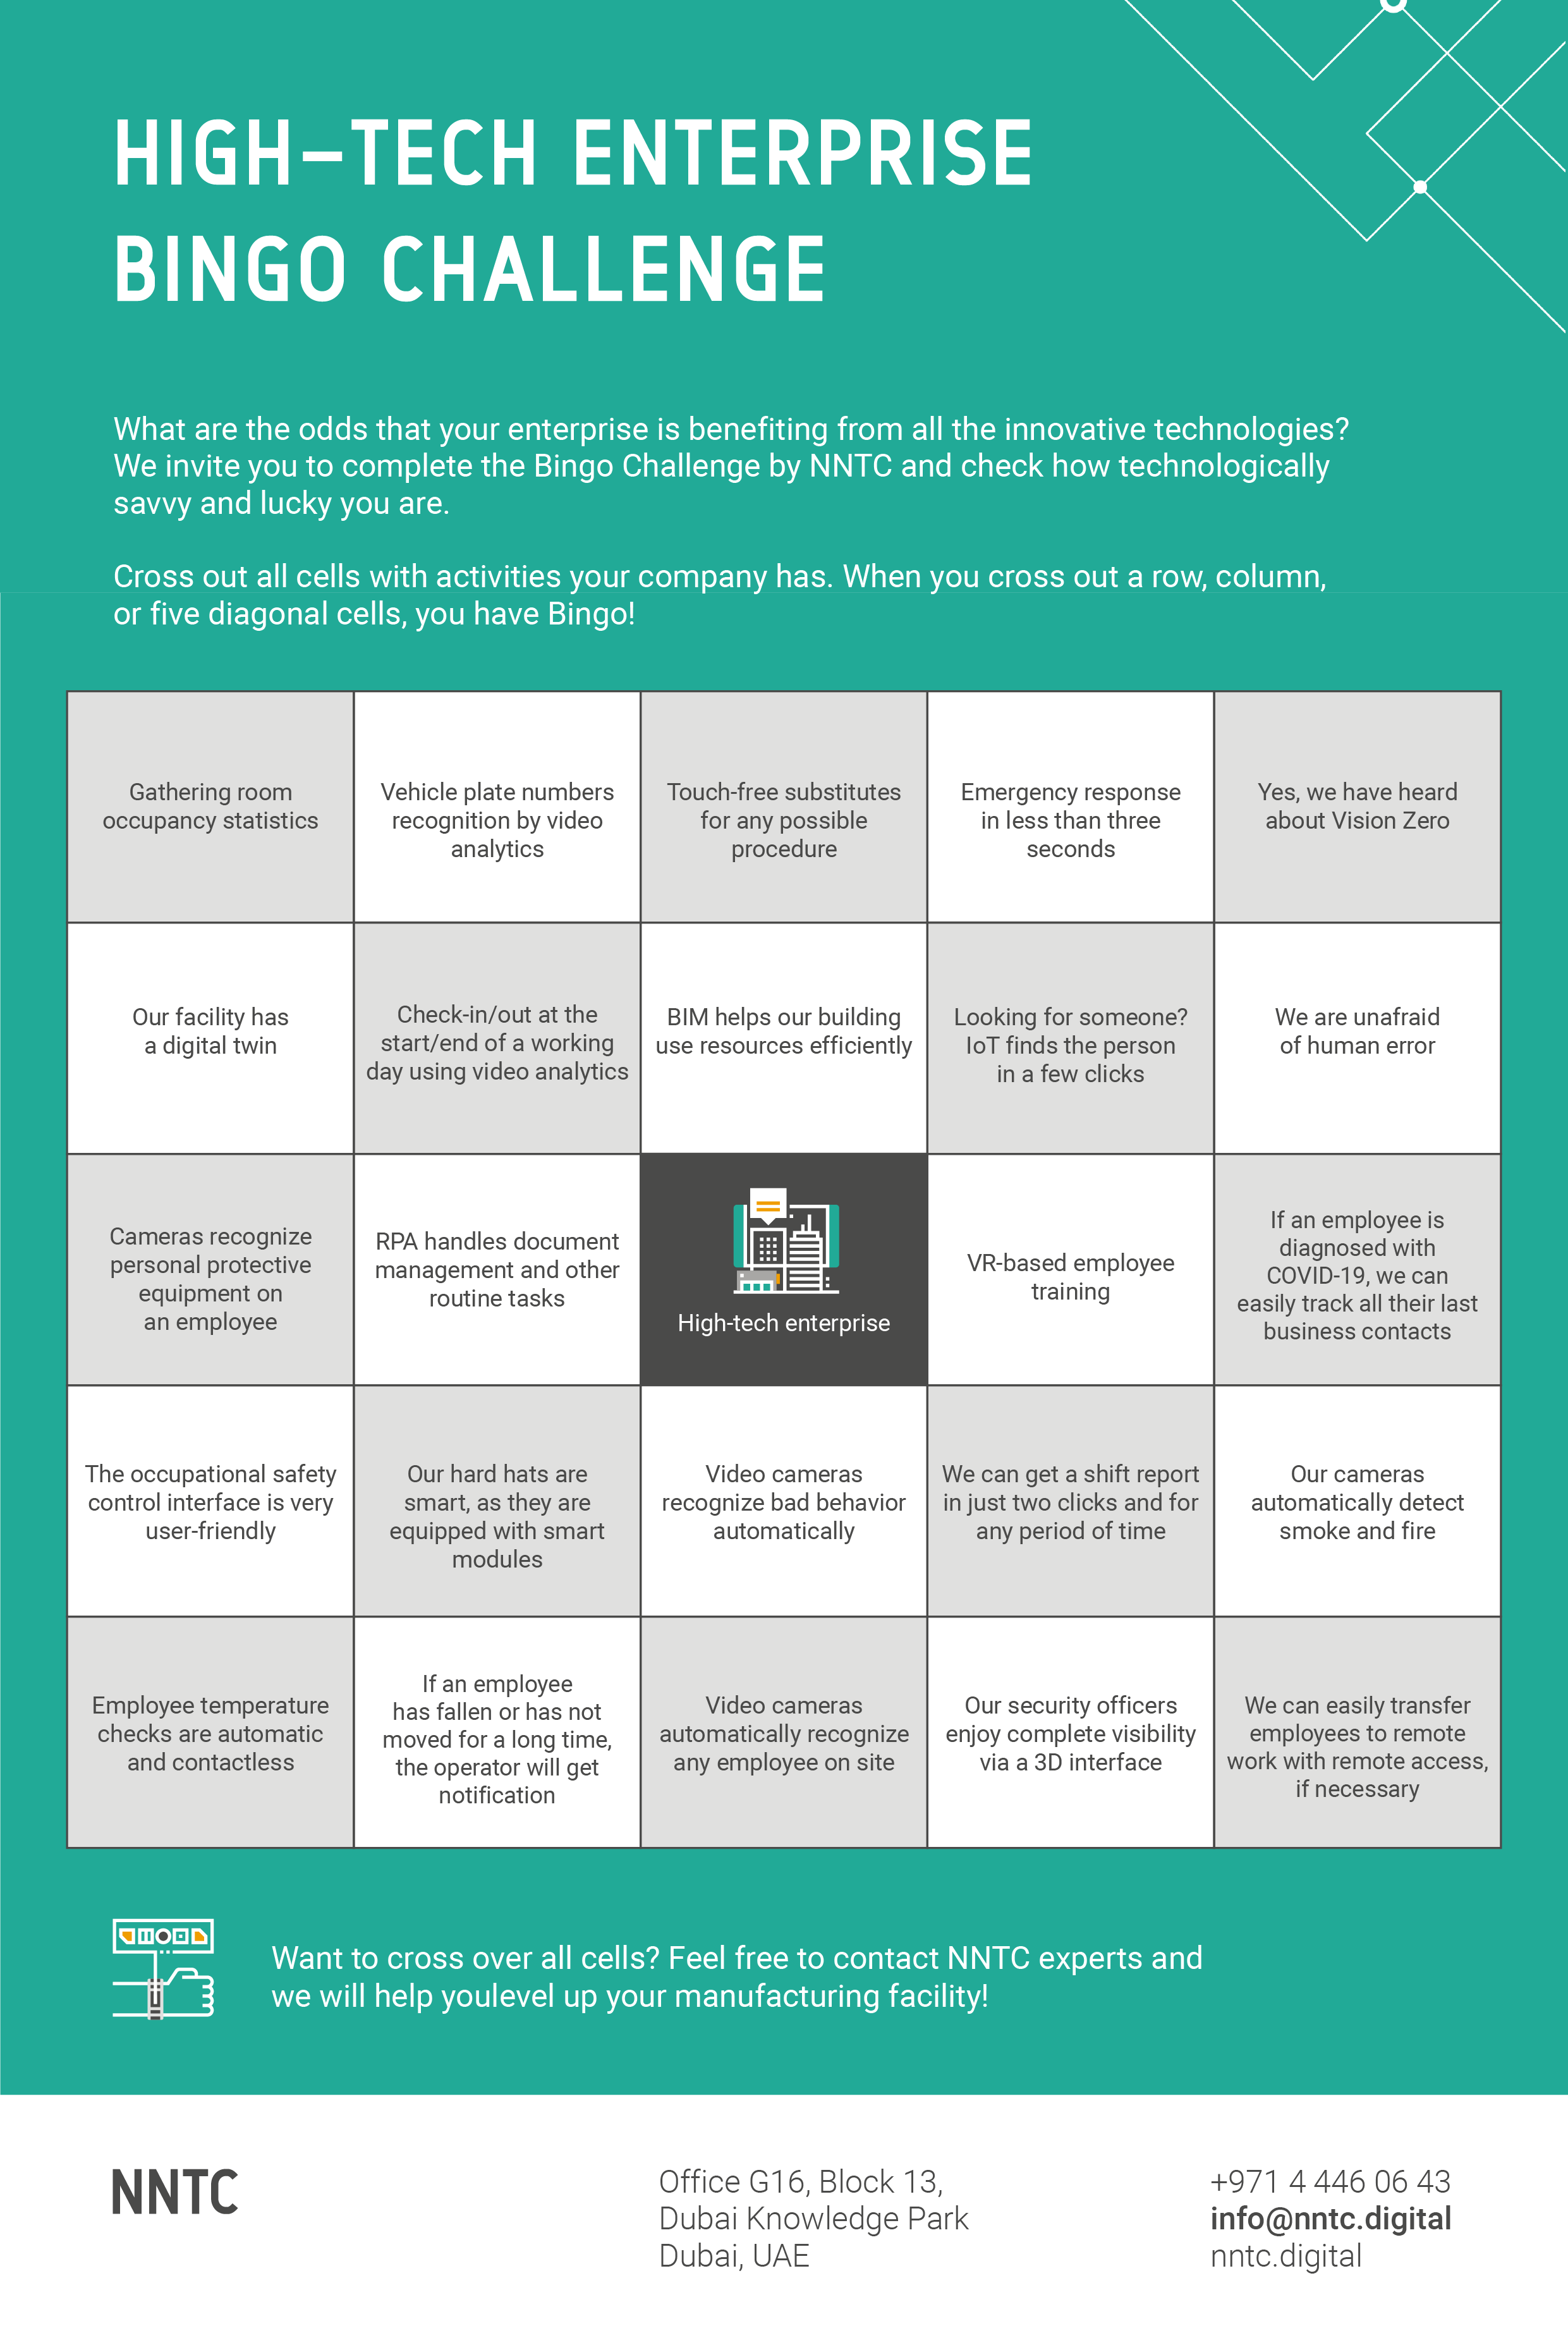 High-tech bingo challenge